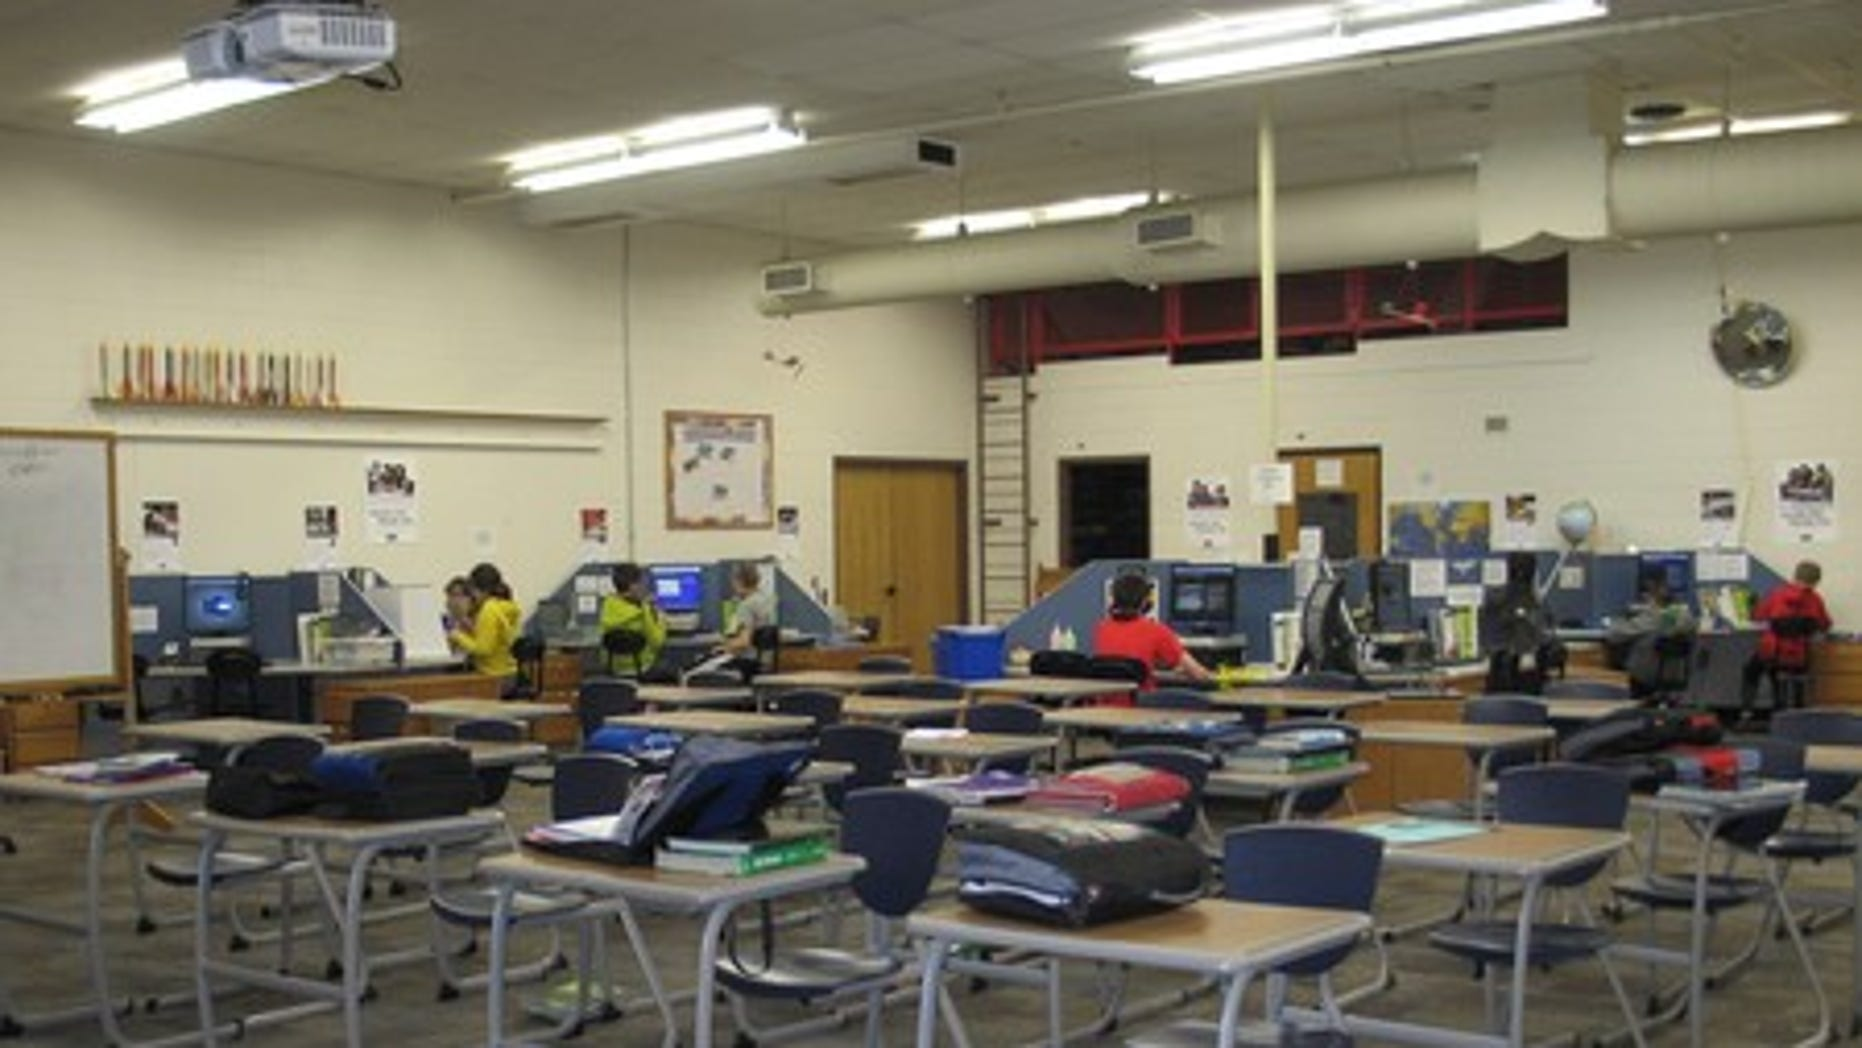 A career and technical education classroom at Royster Middle School in Chanute, Kansas. (Credit: Royster Middle School)